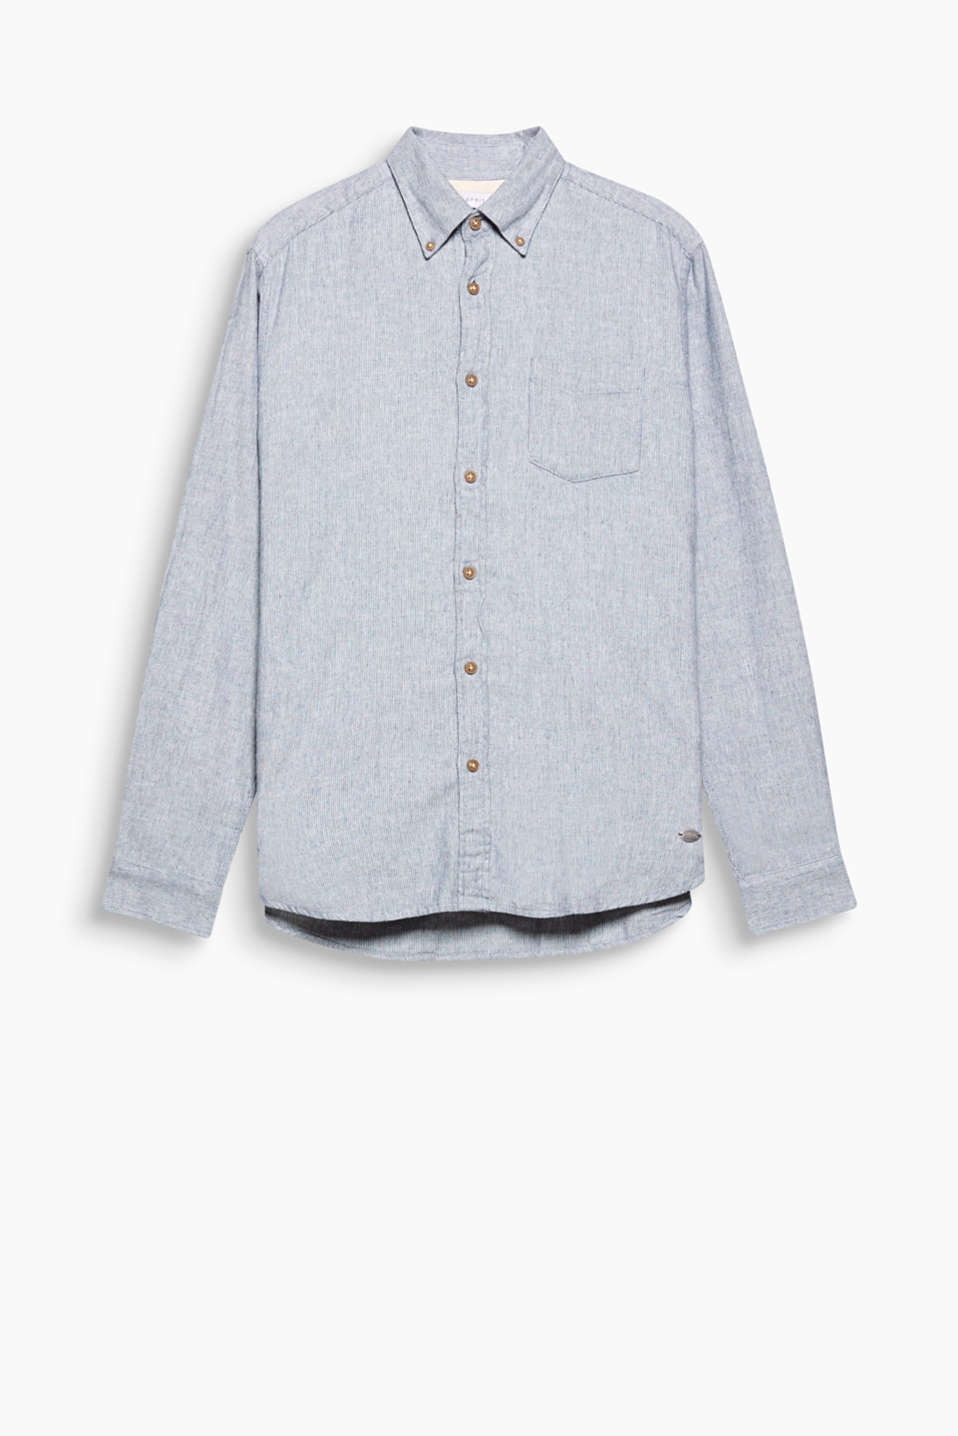 Button-down collar and an interwoven herringbone pattern make this shirt a fine casual style.